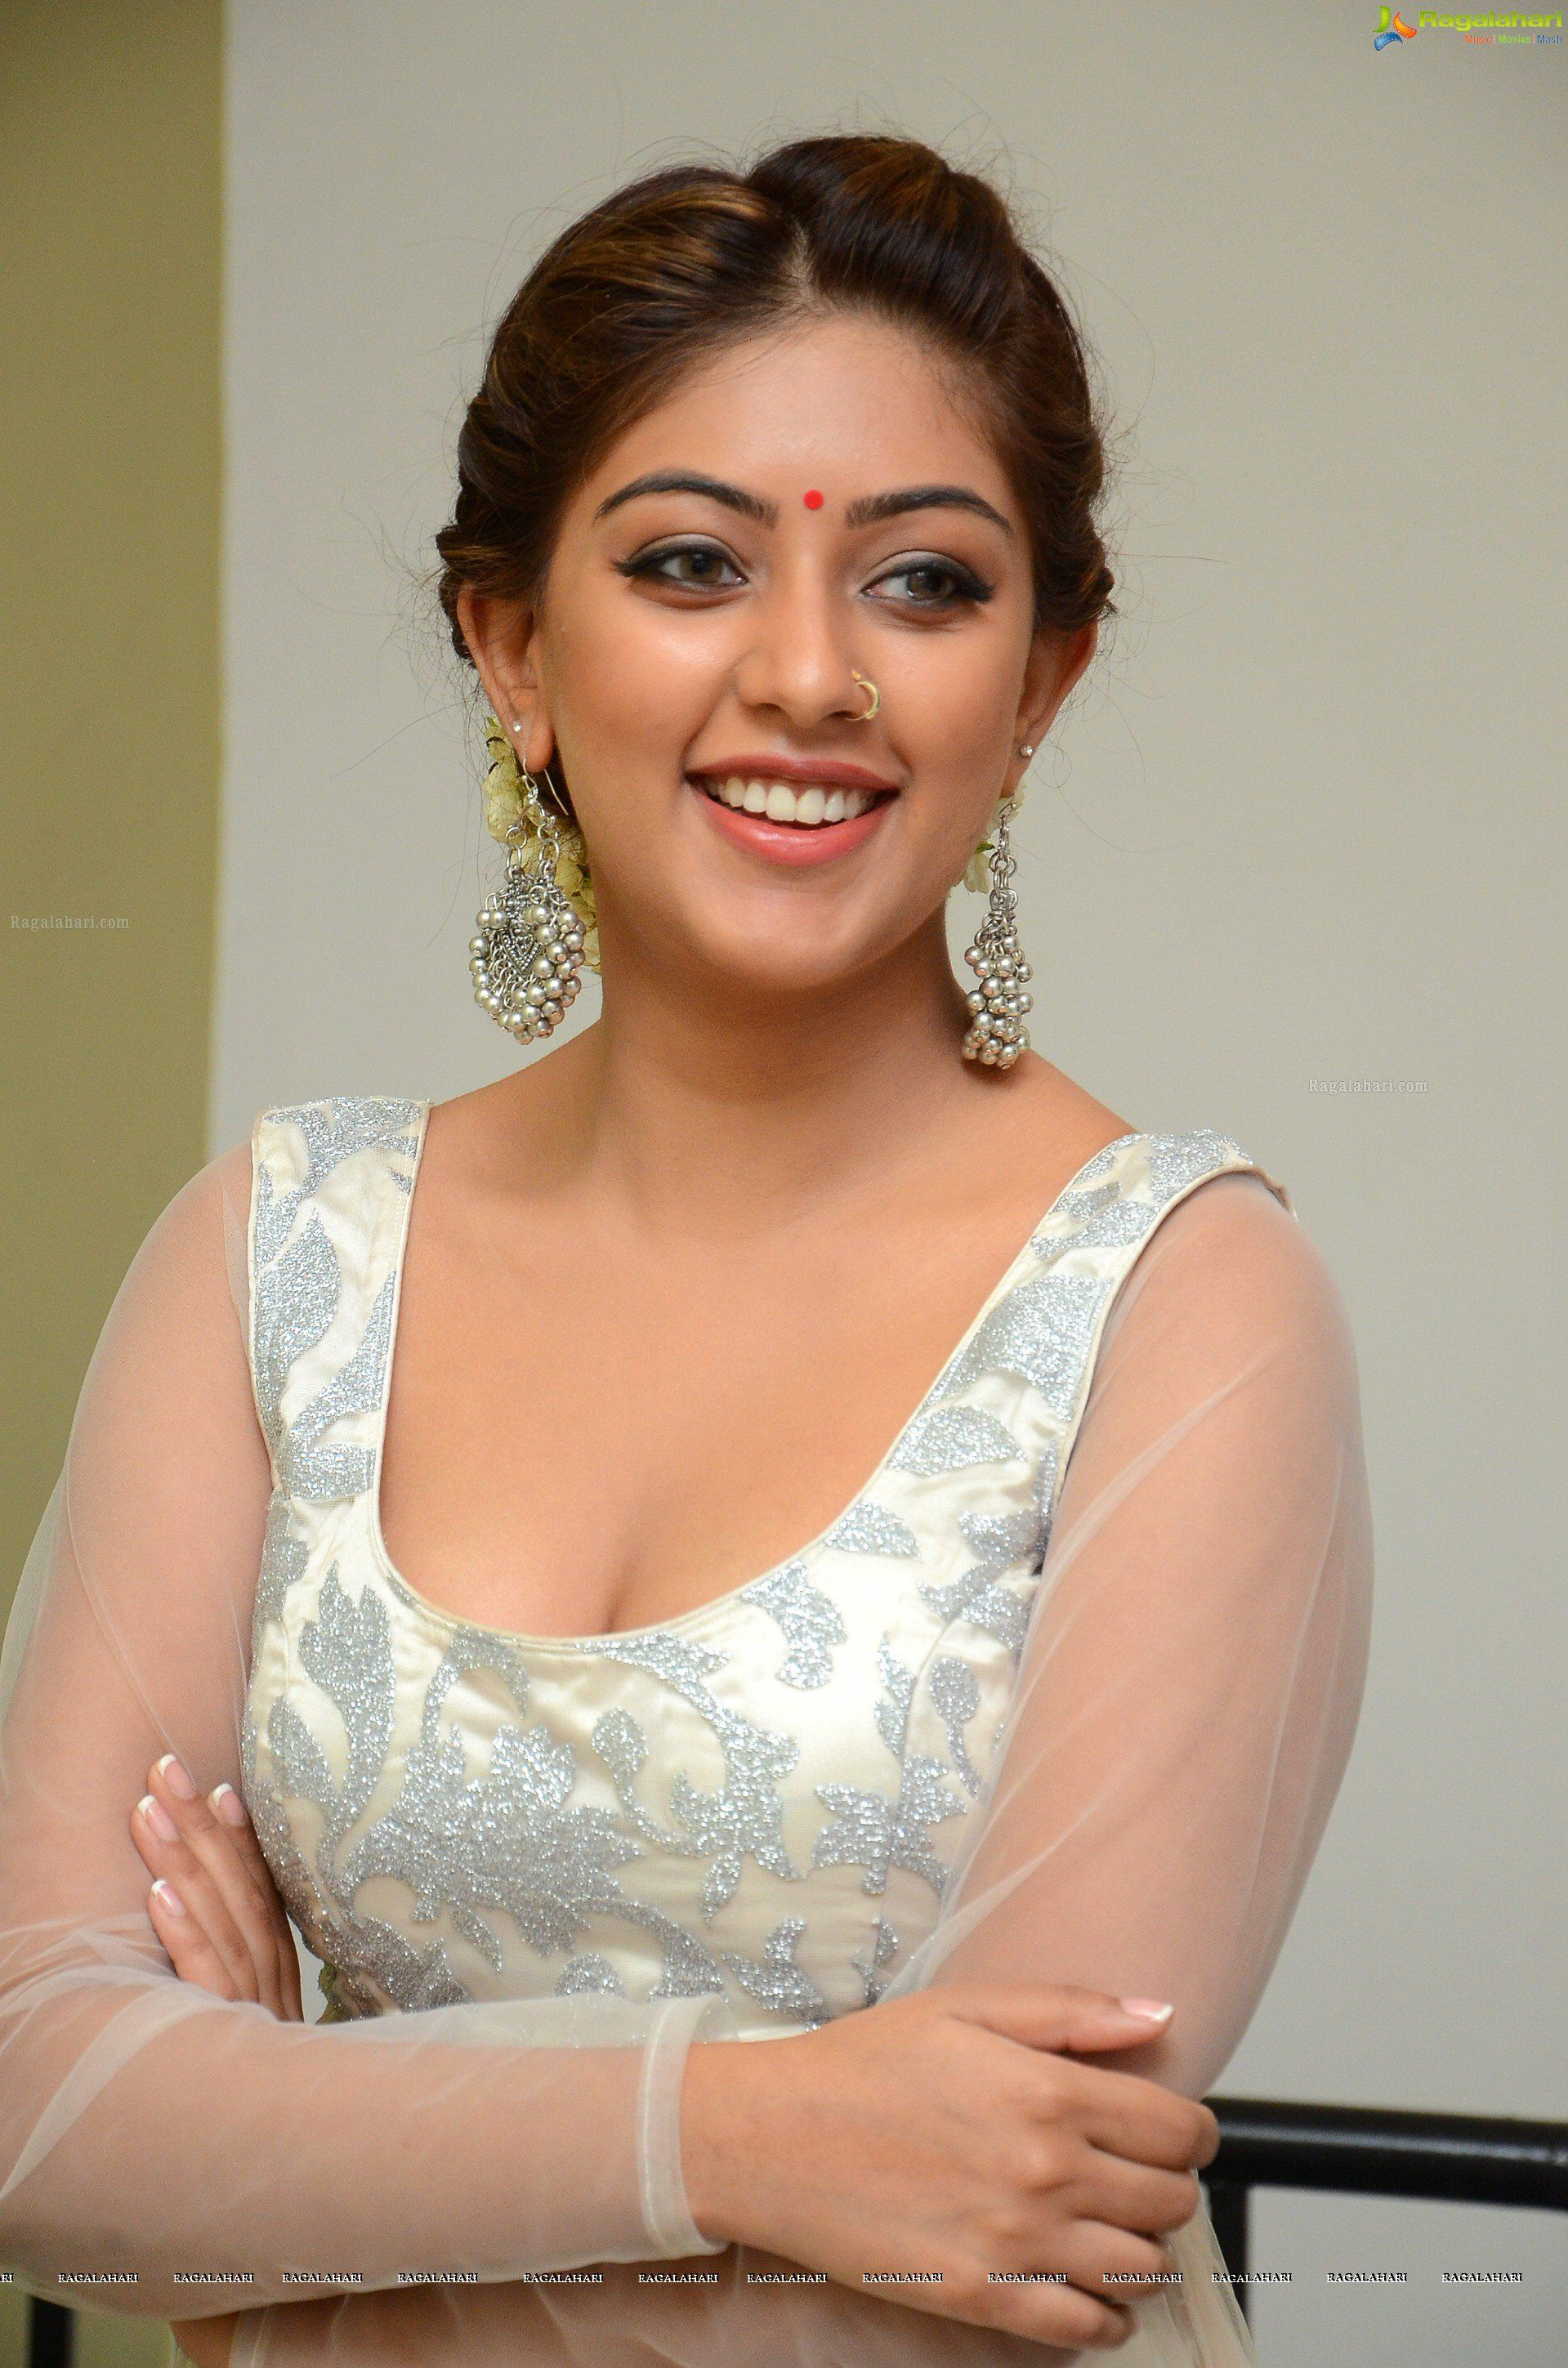 Anu Emmanuel Tollywood Gorgeous Beauty Latest Hot And Sexy Photos Collection In Video Format On Youtube This Hot And Sexy Images Collection Of Telugu